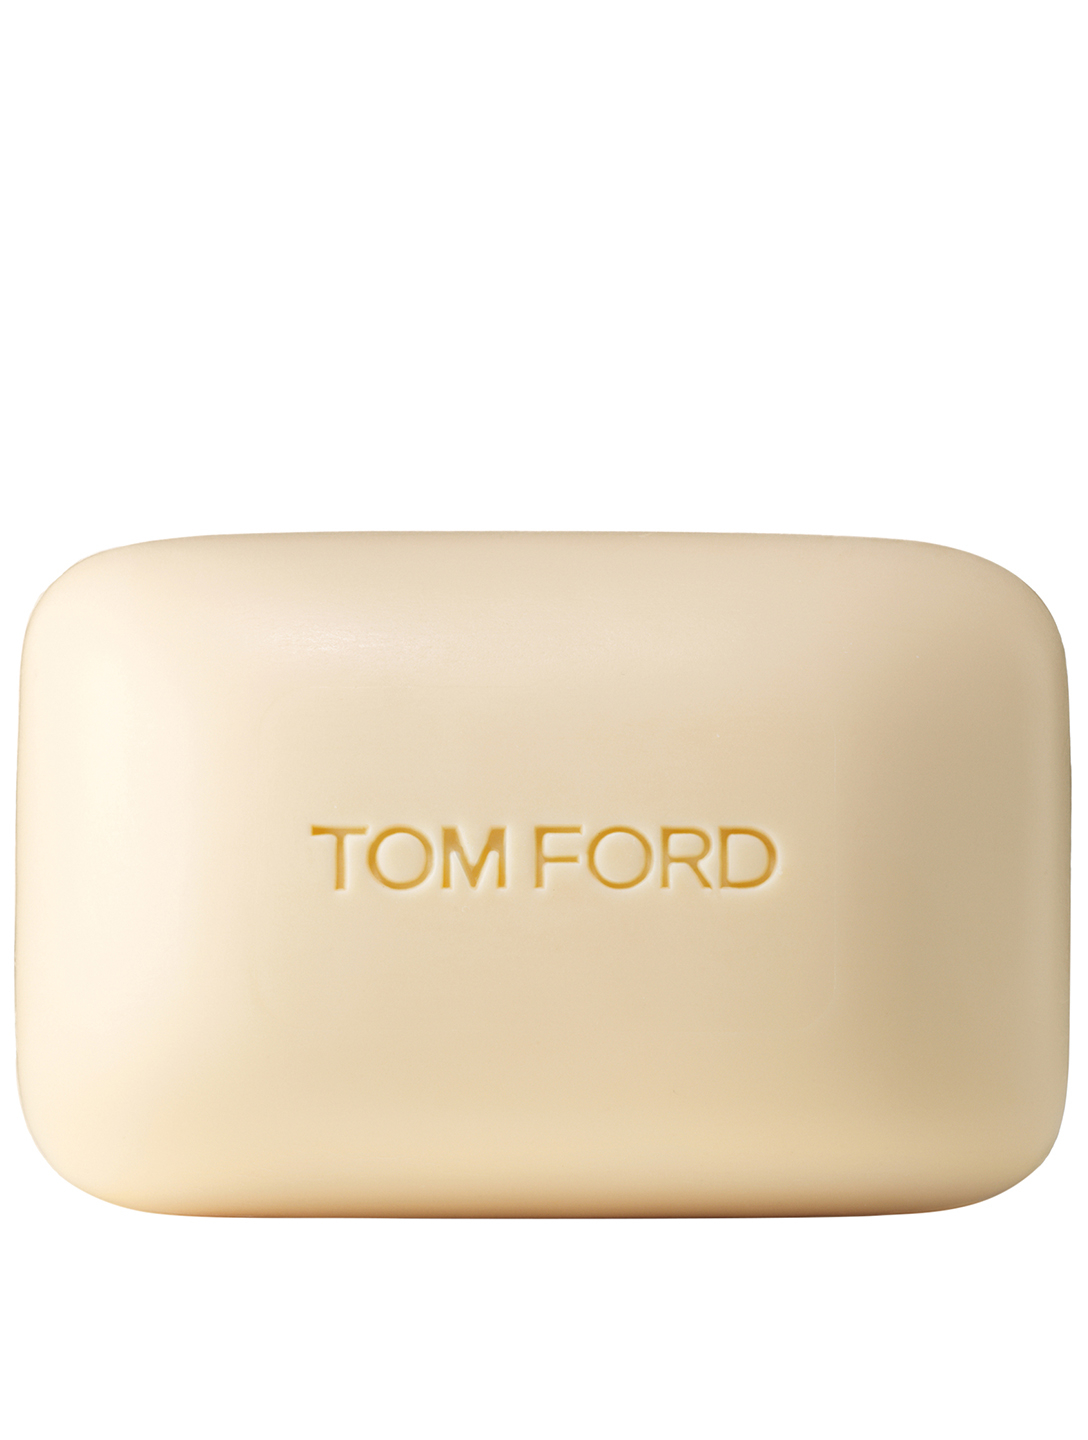 TOM FORD Jasmin Rouge Bath Soap Beauty